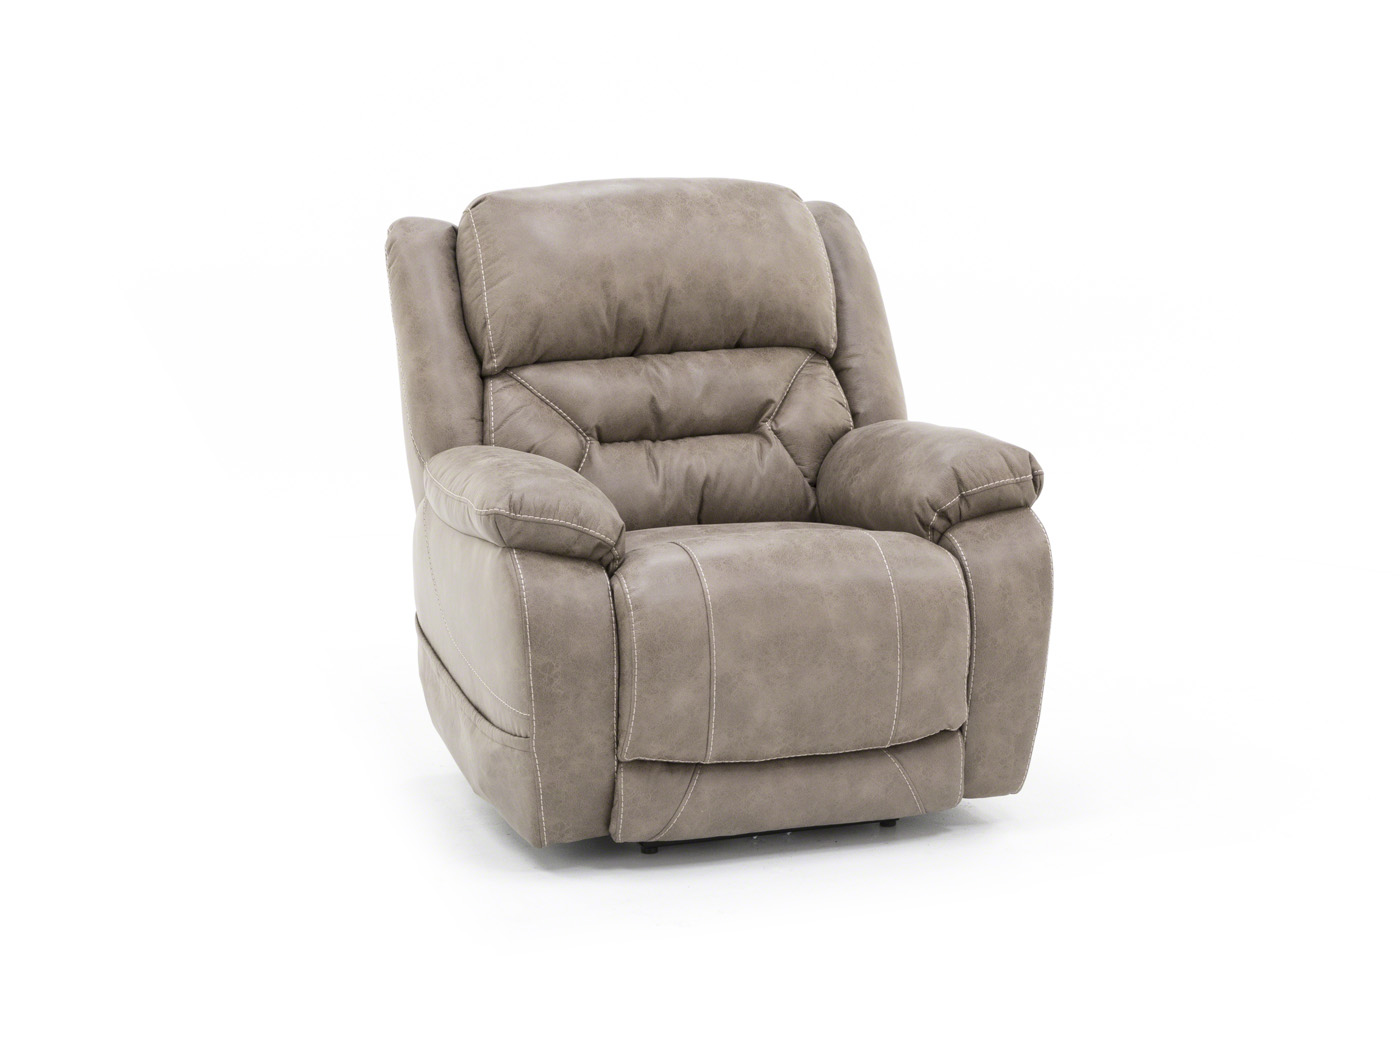 is maverick lay and collection individual by extra southern be as flat of sofas or sectionals brands sofa part large set which from motion wide the a can ordered pieces recliner